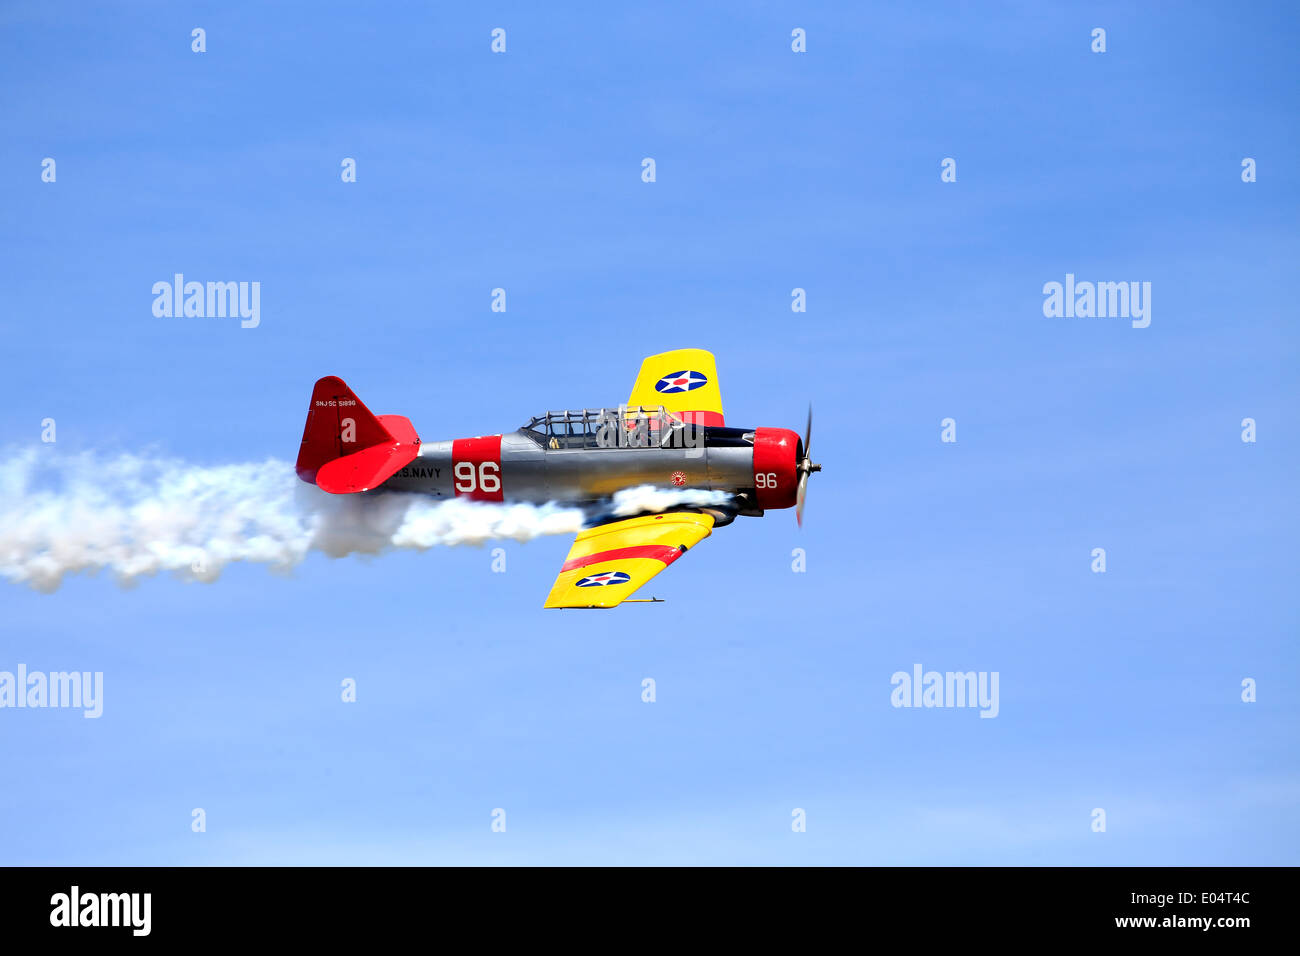 North American Aviation T-6 Texan, a single-engined advanced trainer aircraft used to train pilots of the United States Army - Stock Image